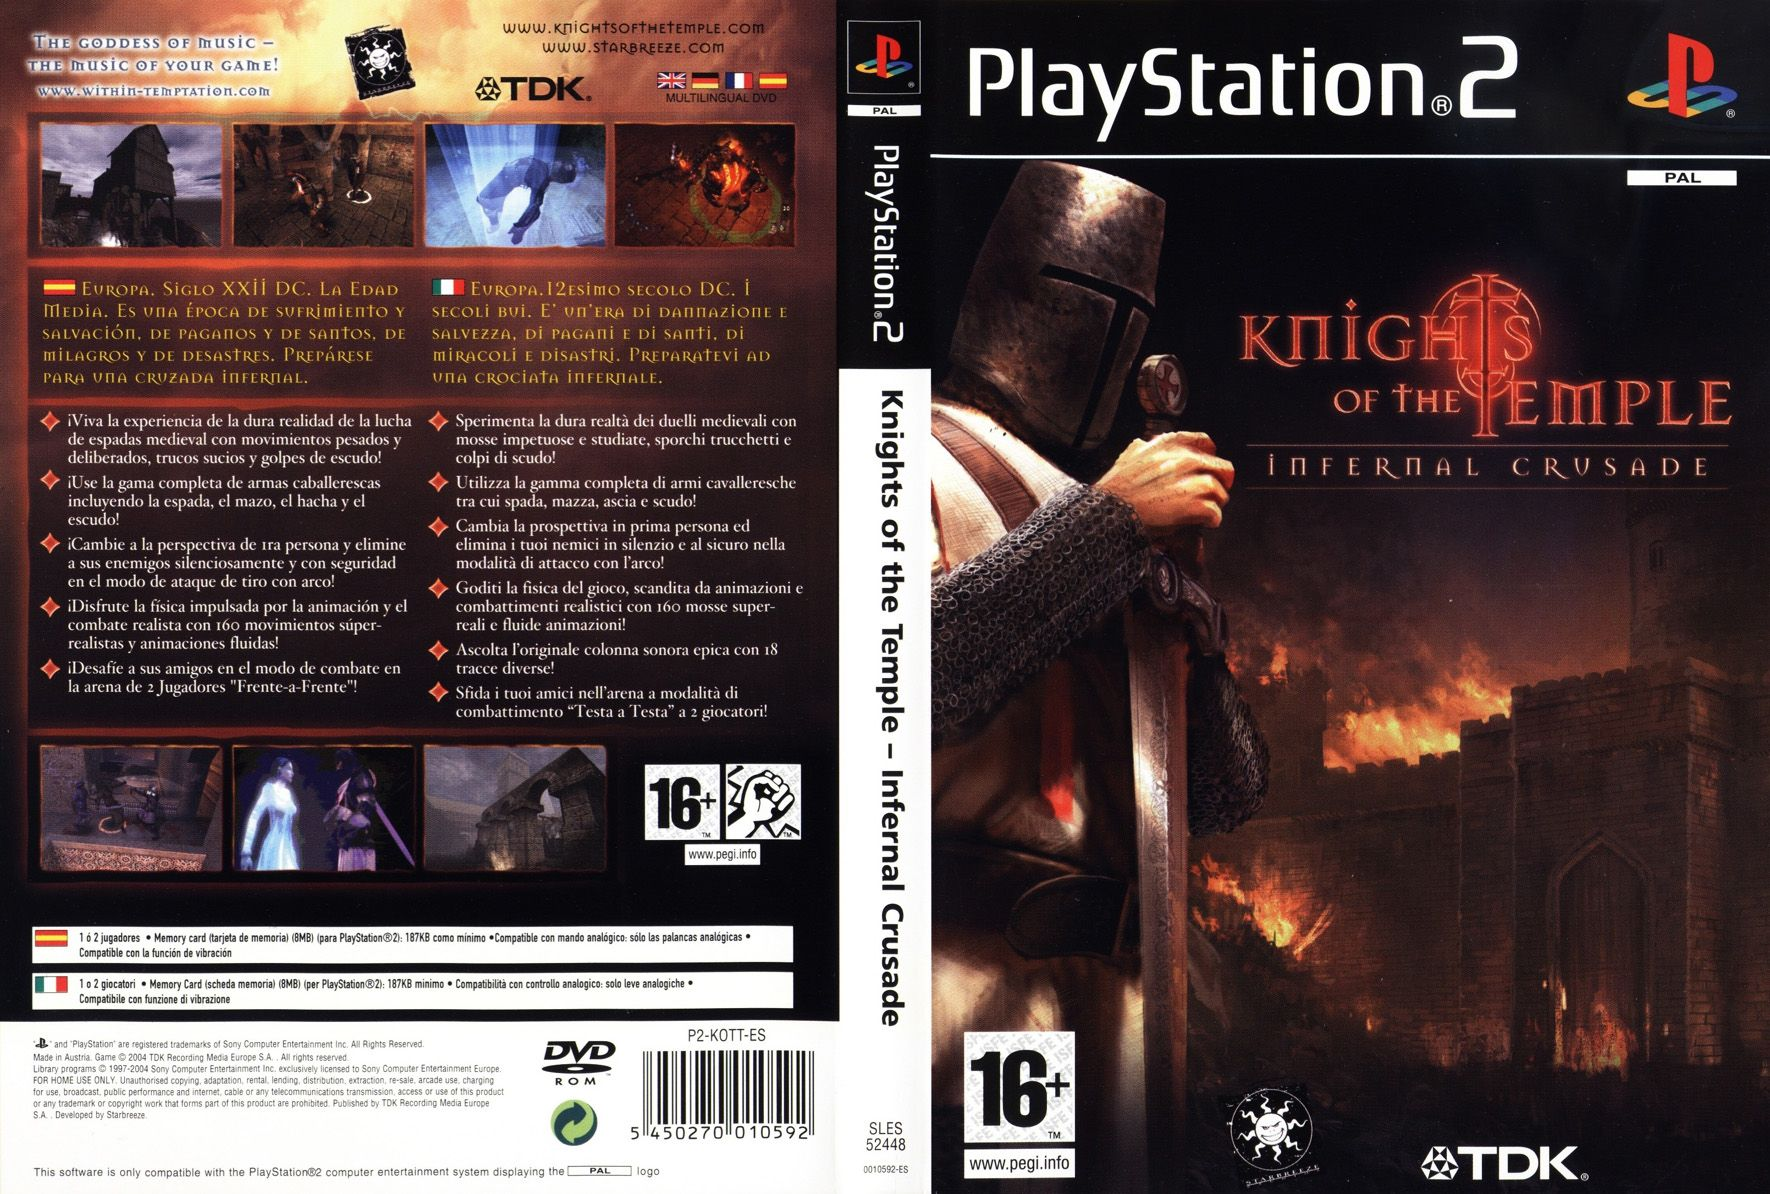 Knights of the Temple (Jeu Playstation 2) - Images, vidéos, astuces ...: http://www.just-gamers.fr/ps2/knights-of-the-temple.html